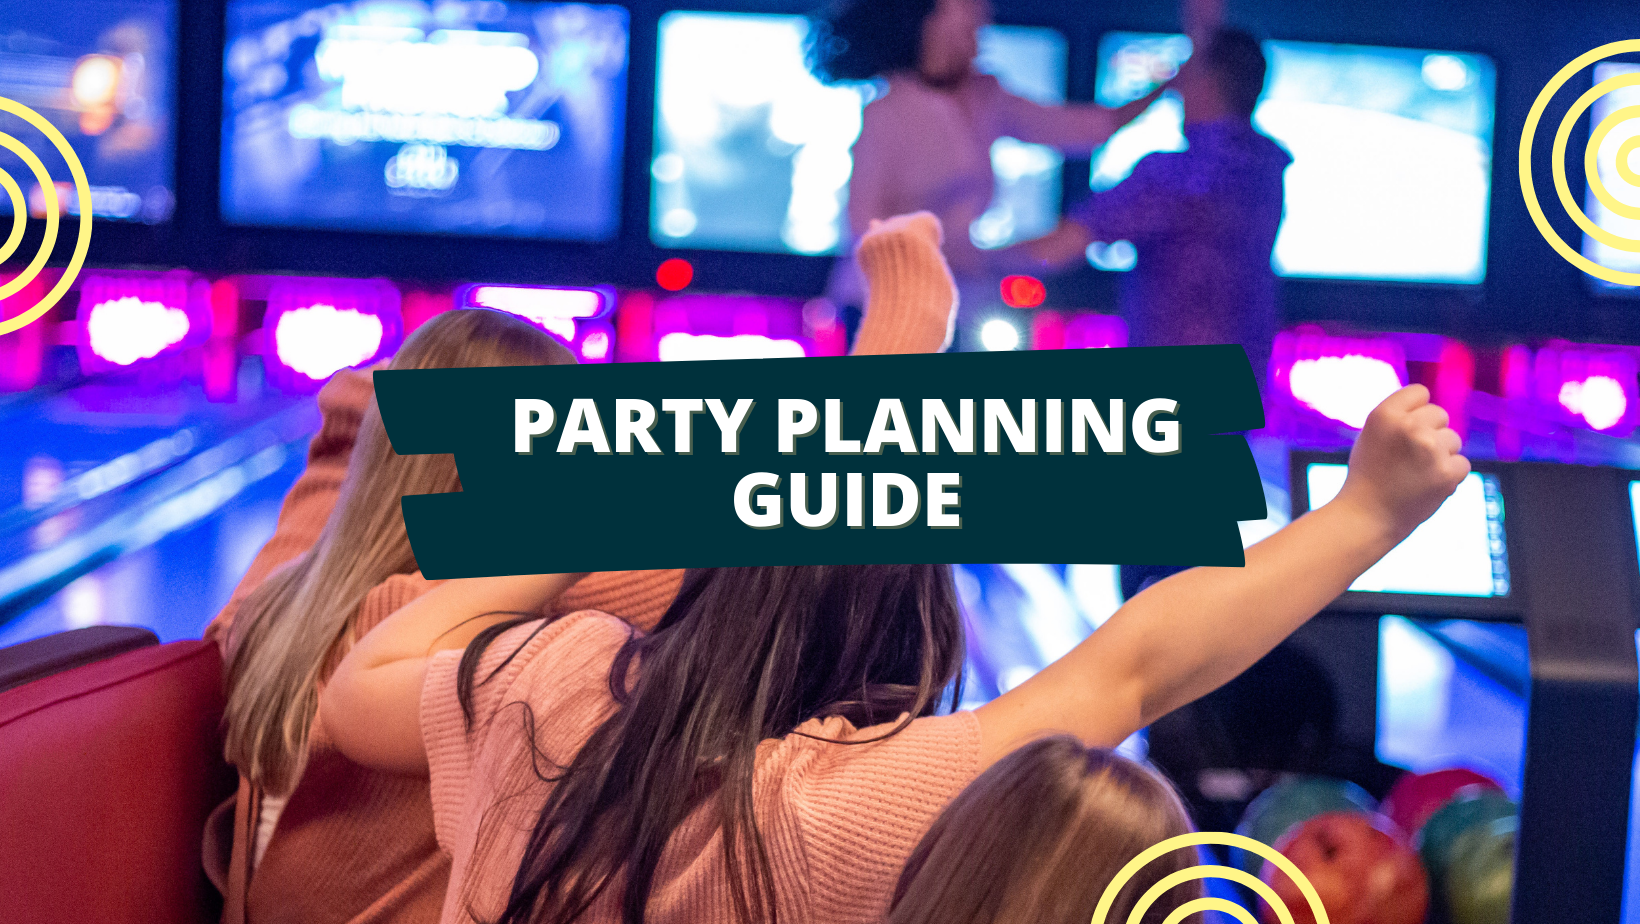 plan a party at JB's on 41 - it's easy with event coordinator and fast online